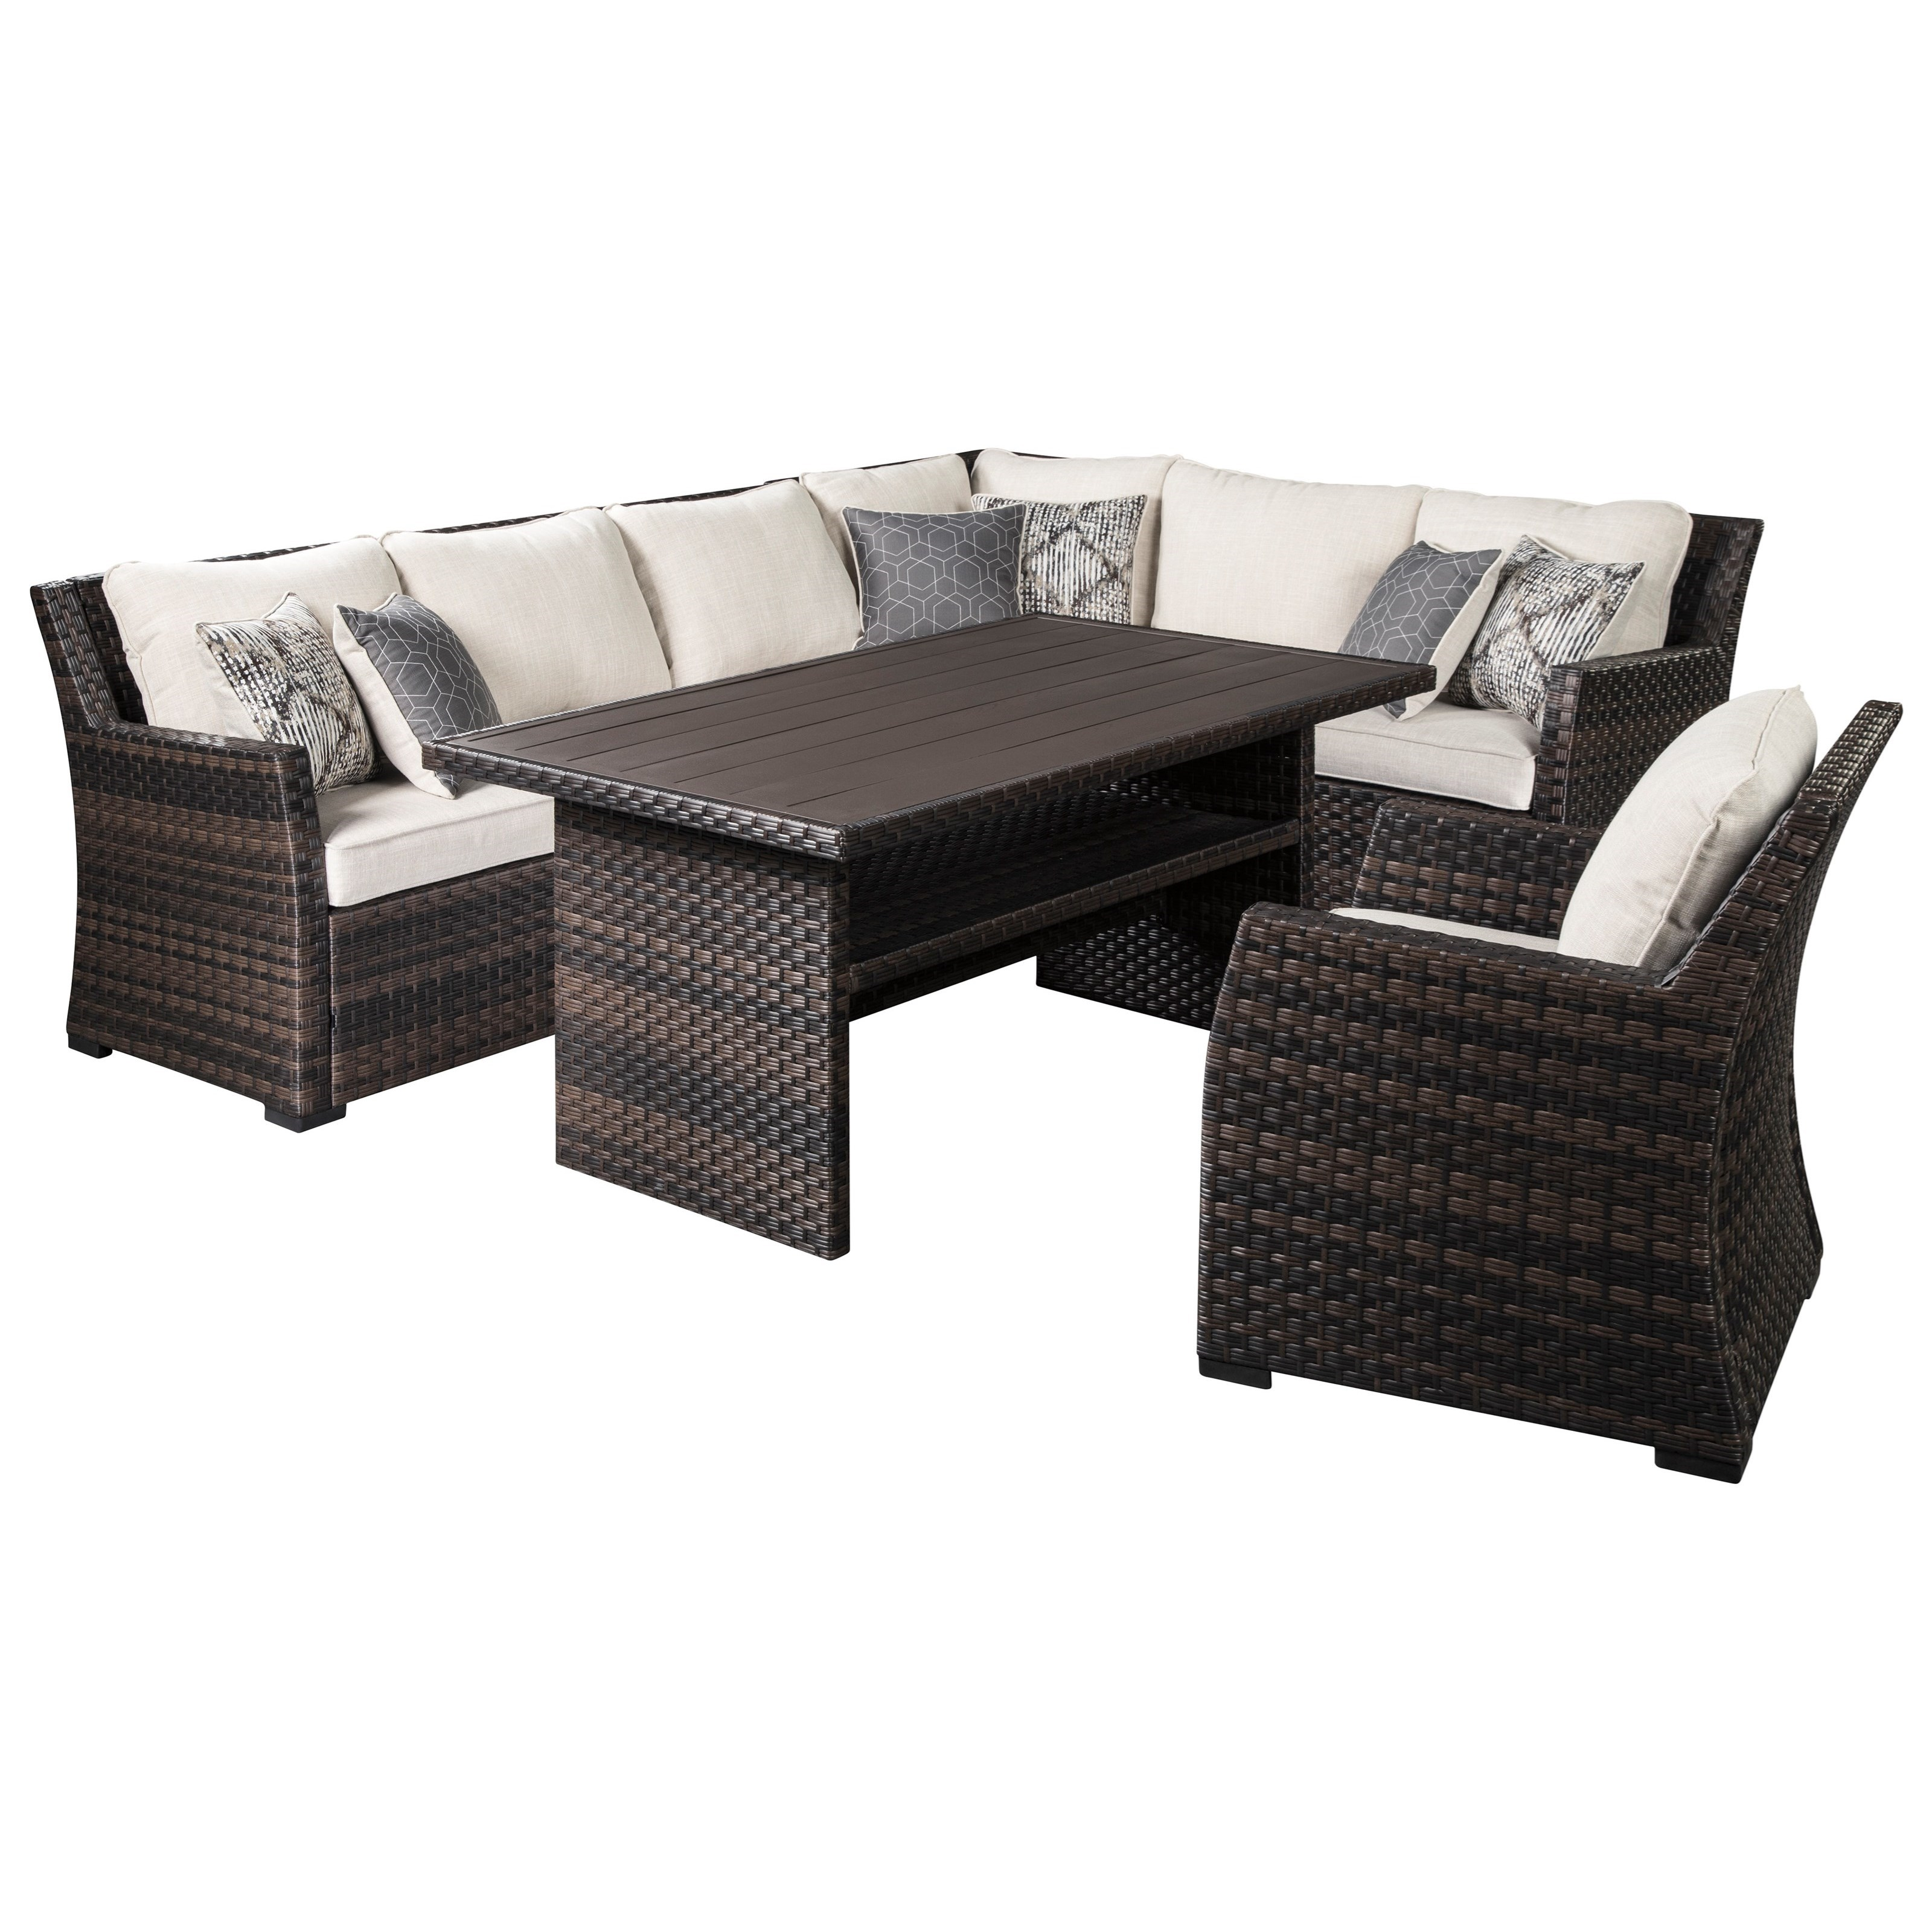 Easy Isle Outdoor Sectional with Table & Lounge Chair by Signature Design by Ashley at HomeWorld Furniture